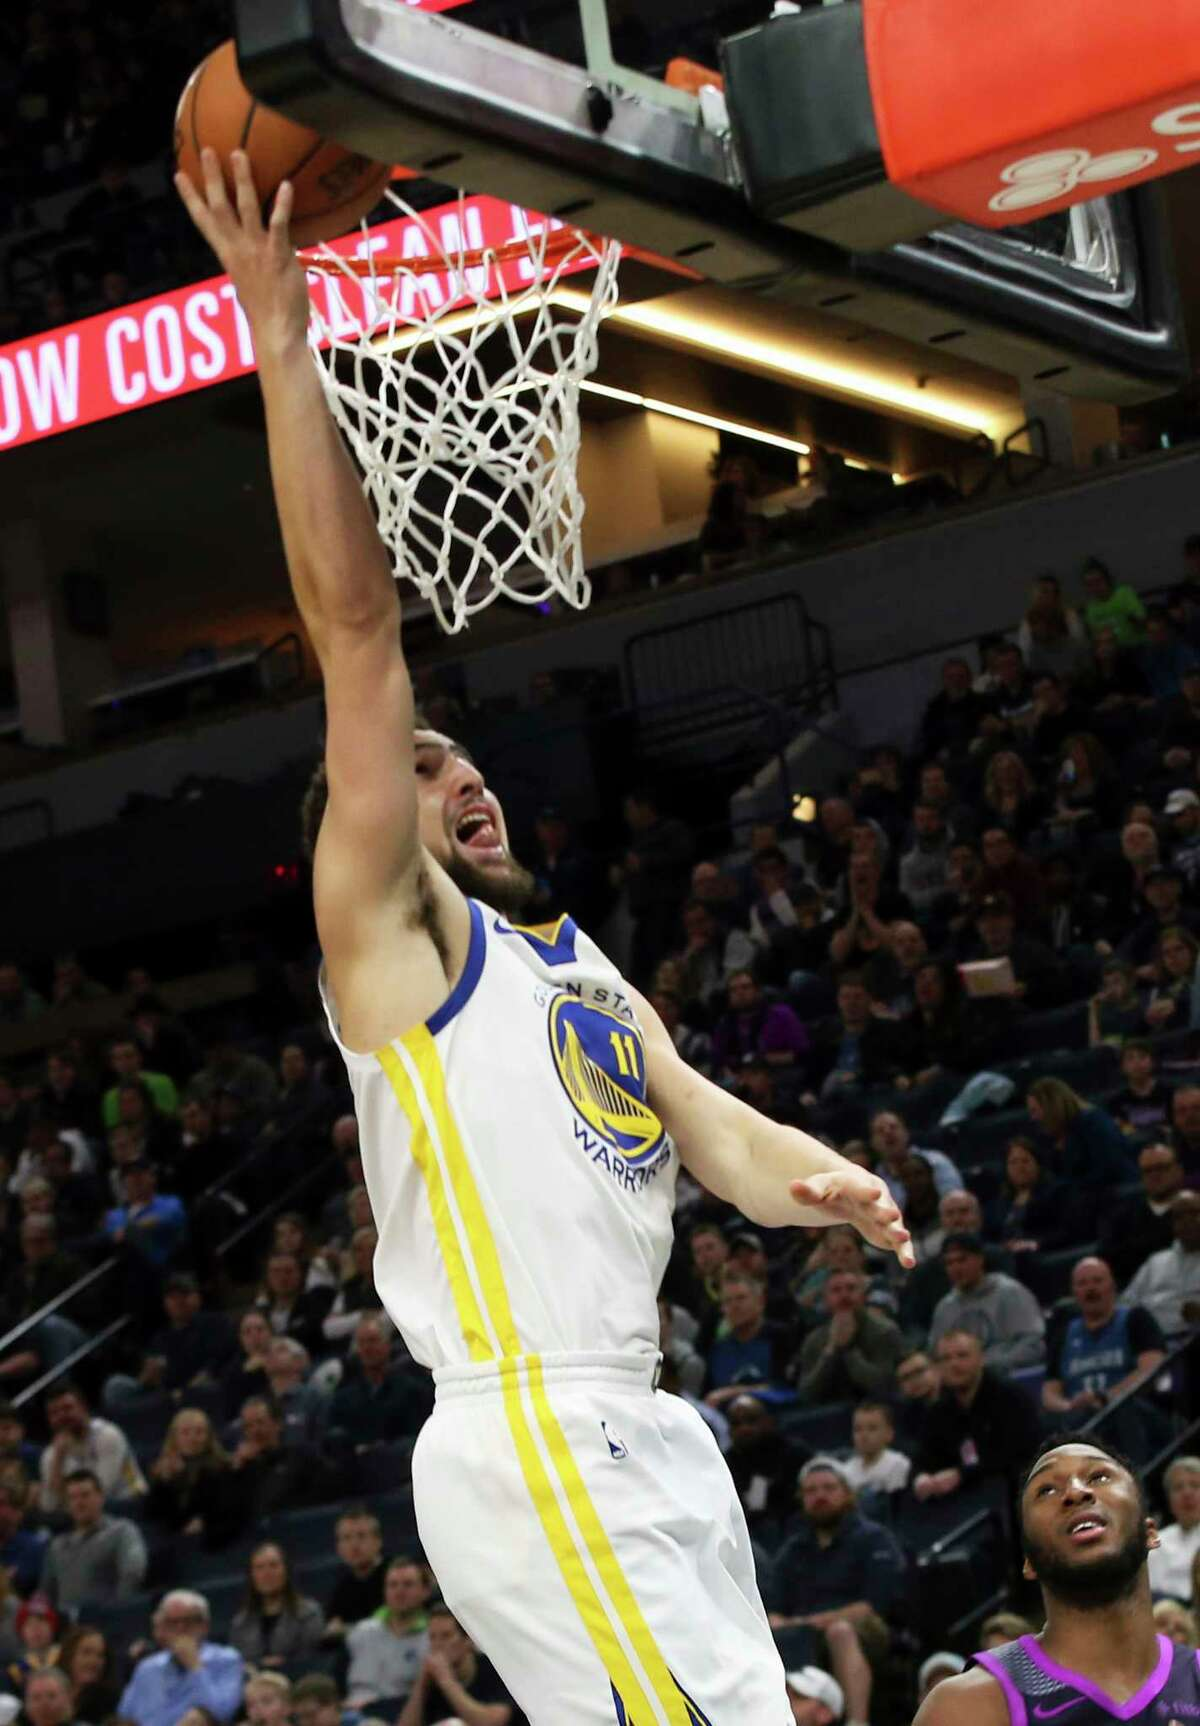 Golden State Warriors' Klay Thompson, left, lays up as Minnesota Timberwolves' Josh Okogie, lower right, watches in the second half of an NBA basketball game Tuesday, March 19, 2019, in Minneapolis. The Warriors won 117-107. Thompson scored 28 points. (AP Photo/Jim Mone)